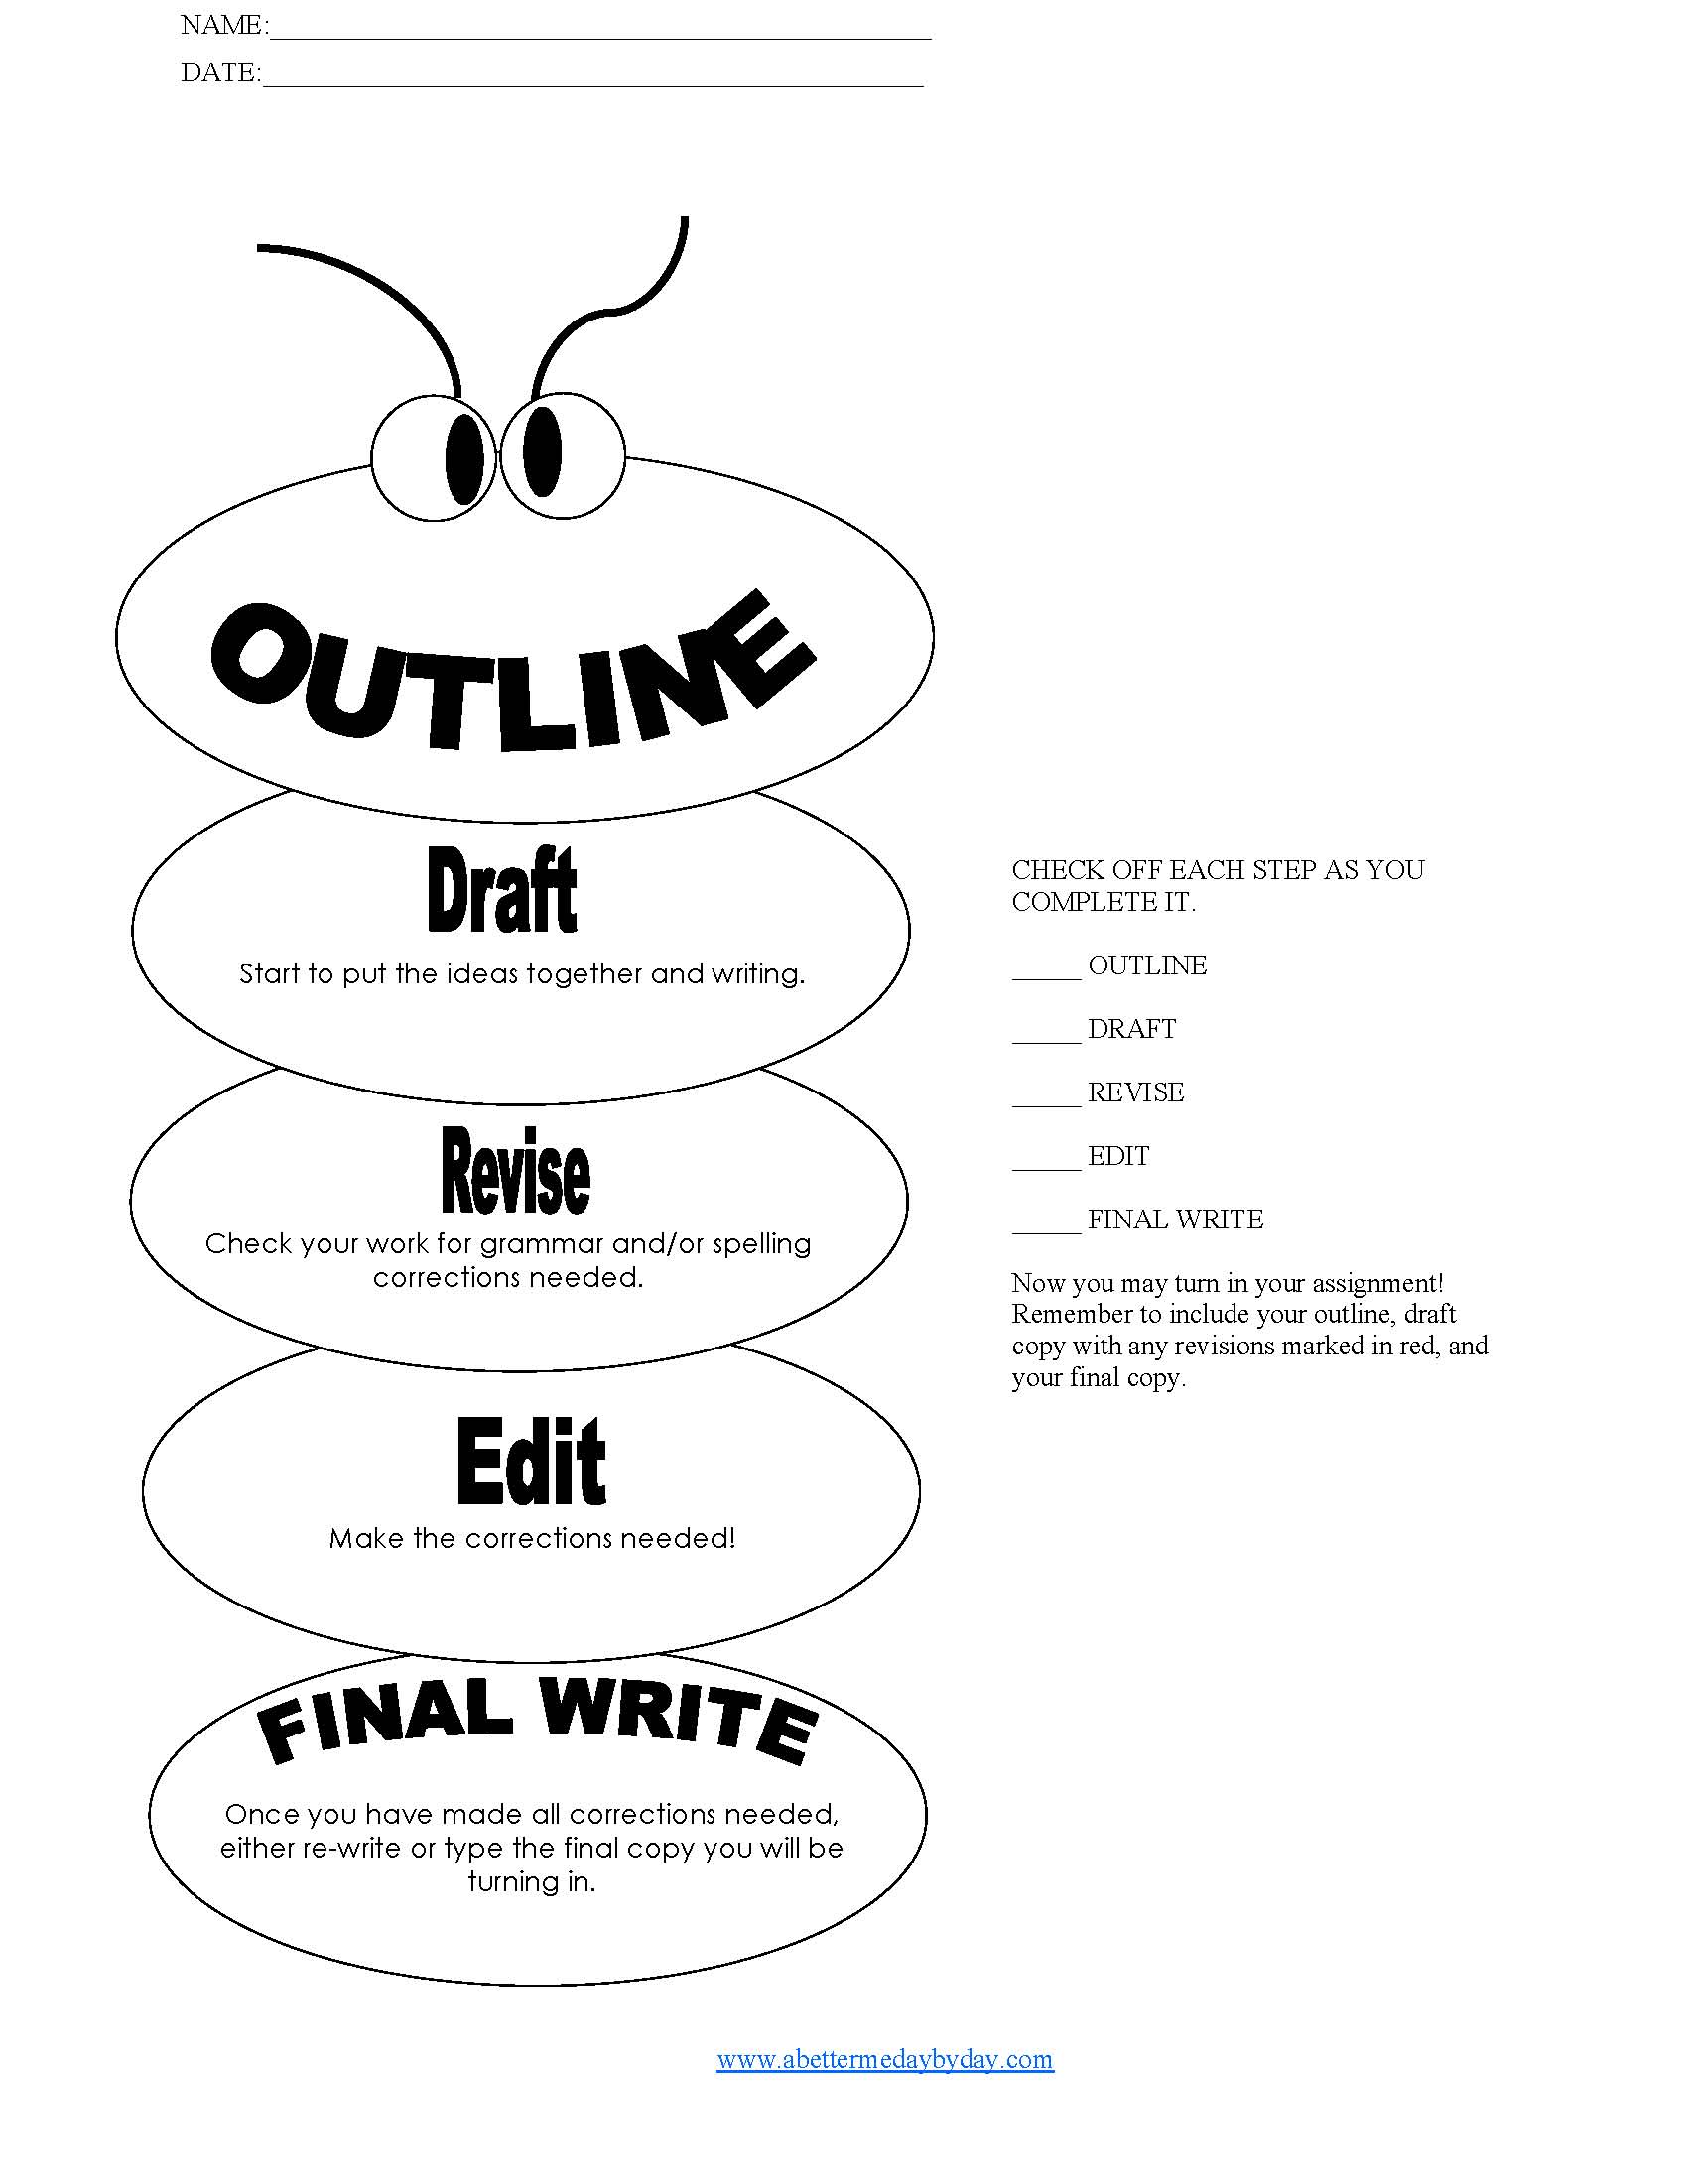 012 Research Paper Hs3 Simple Paragraph Essay Outline Worm Form With Writing Process Check List Page 1 Best Intro Introduction For Full